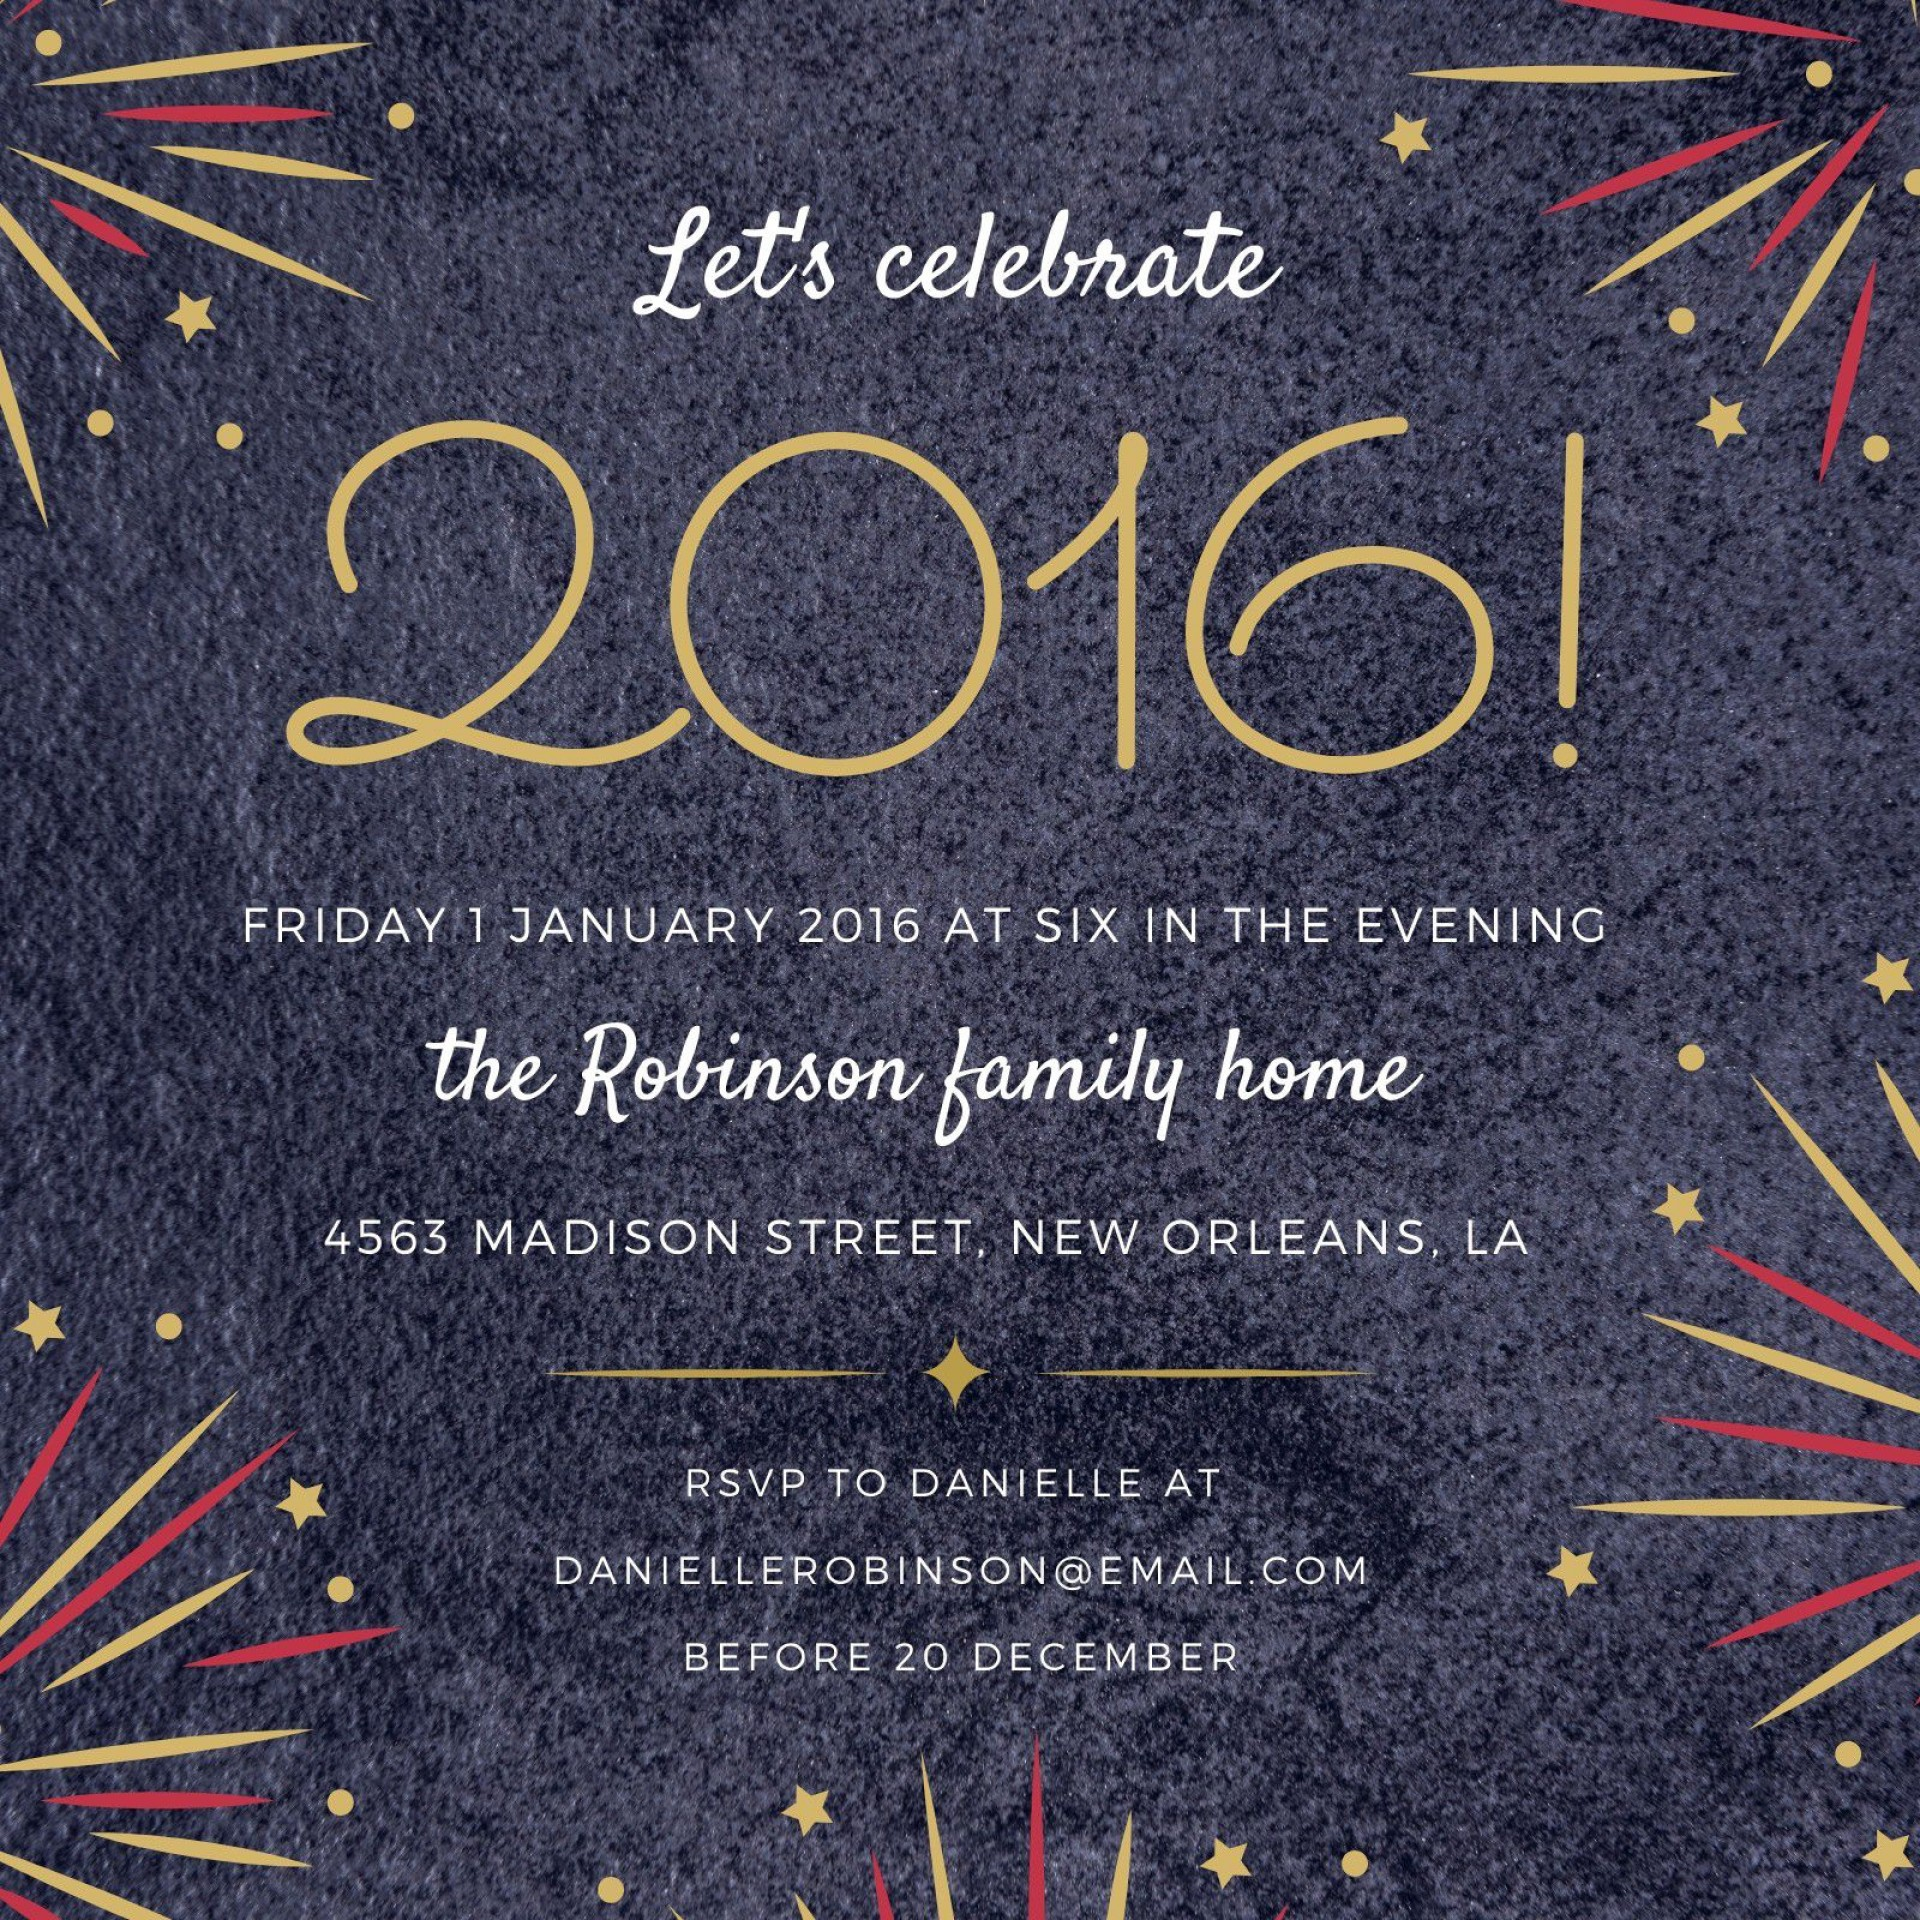 005 Surprising New Year Eve Invitation Template Concept  Party Free Word1920